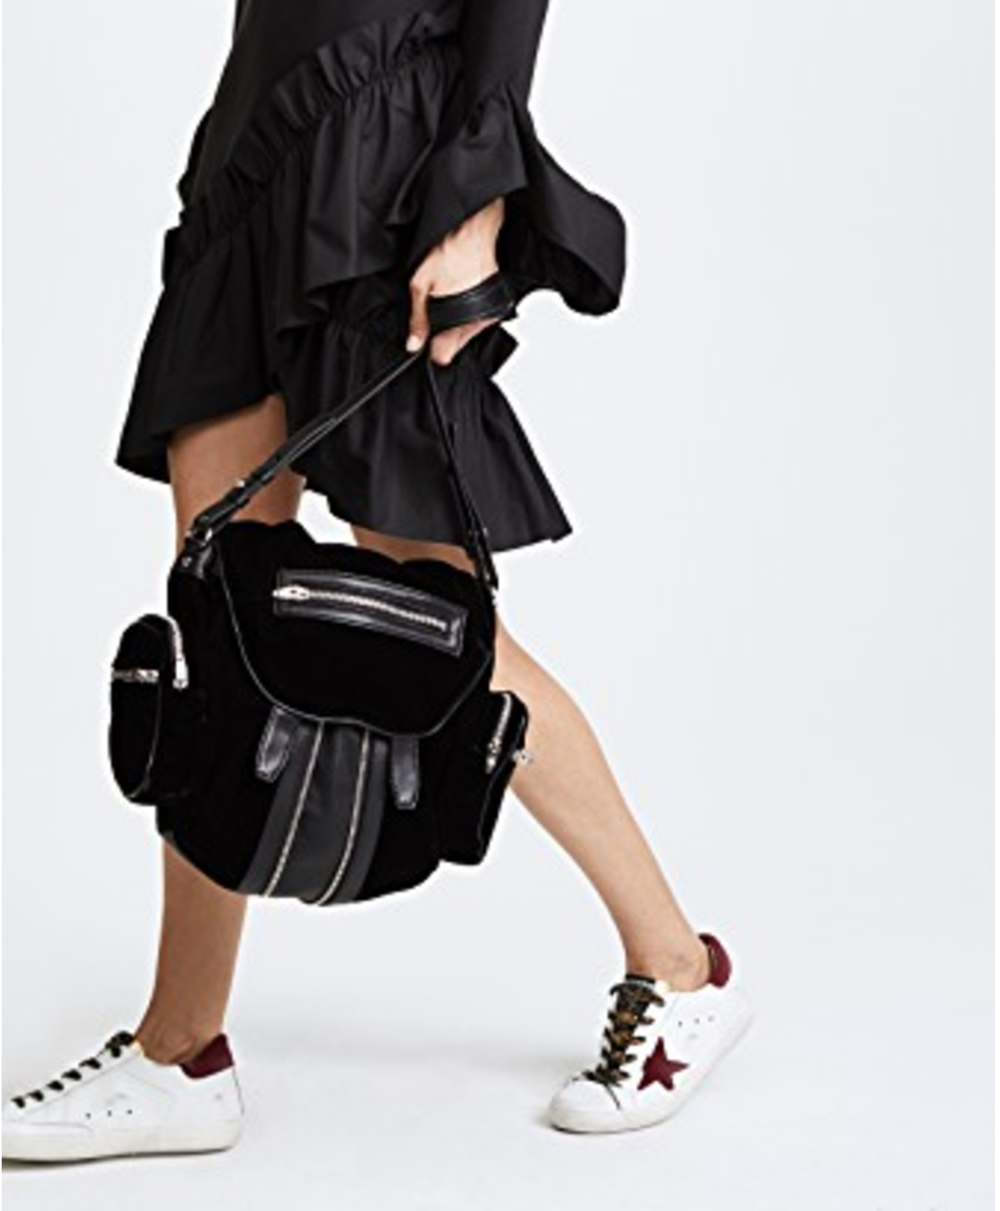 Image courtesy of Shopbop. Find this Alexander Wang Bag,  here . Golden Goose sneakers,  here .